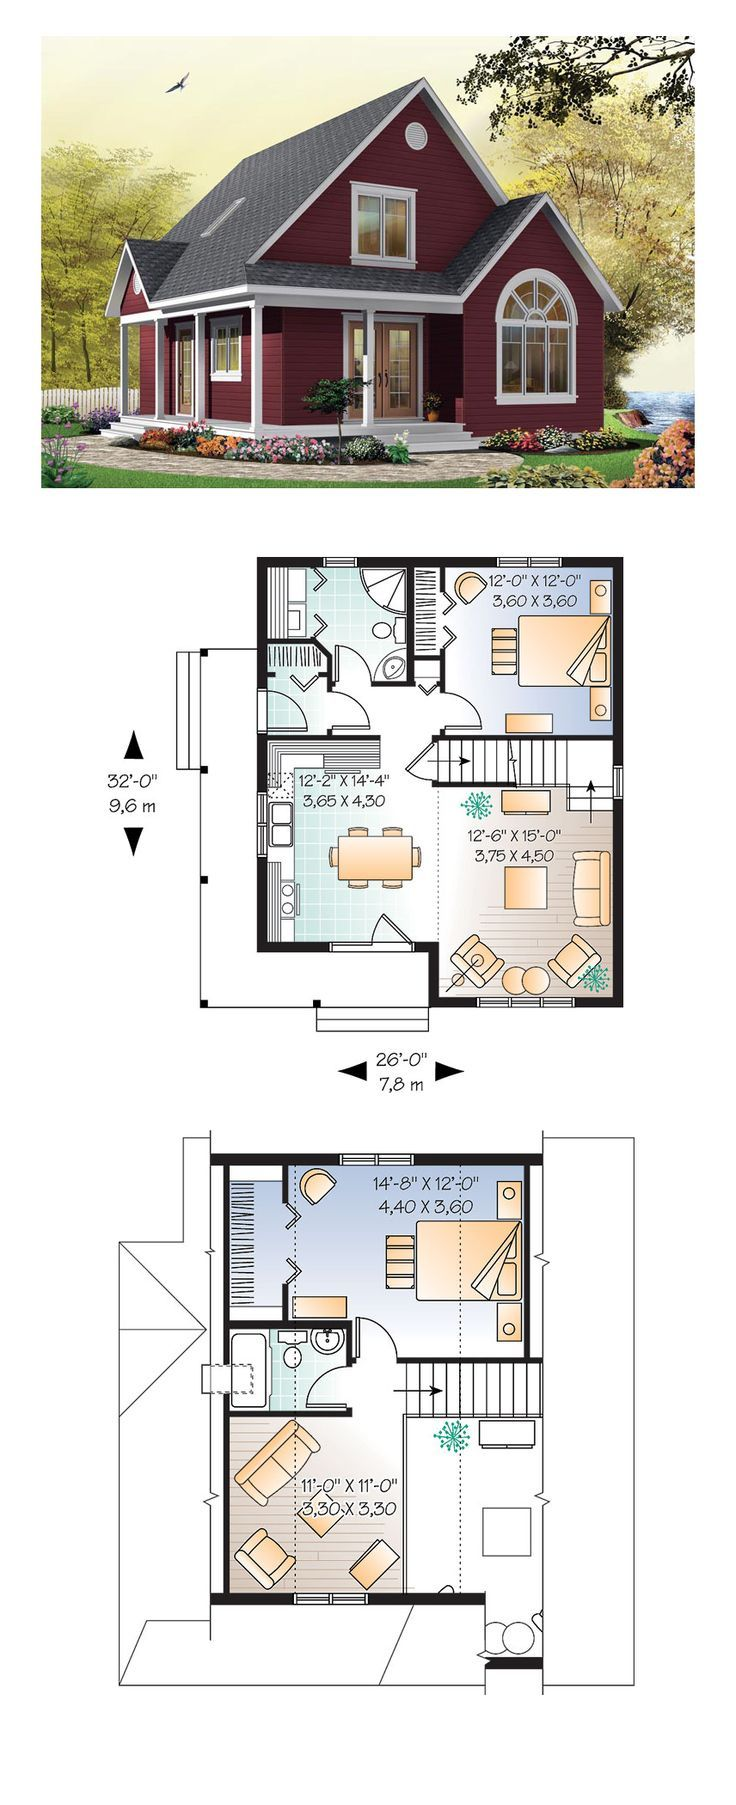 Country Style COOL House Plan ID: chp-28554 | Total living space: 1226 square meters, 2 bedrooms ...